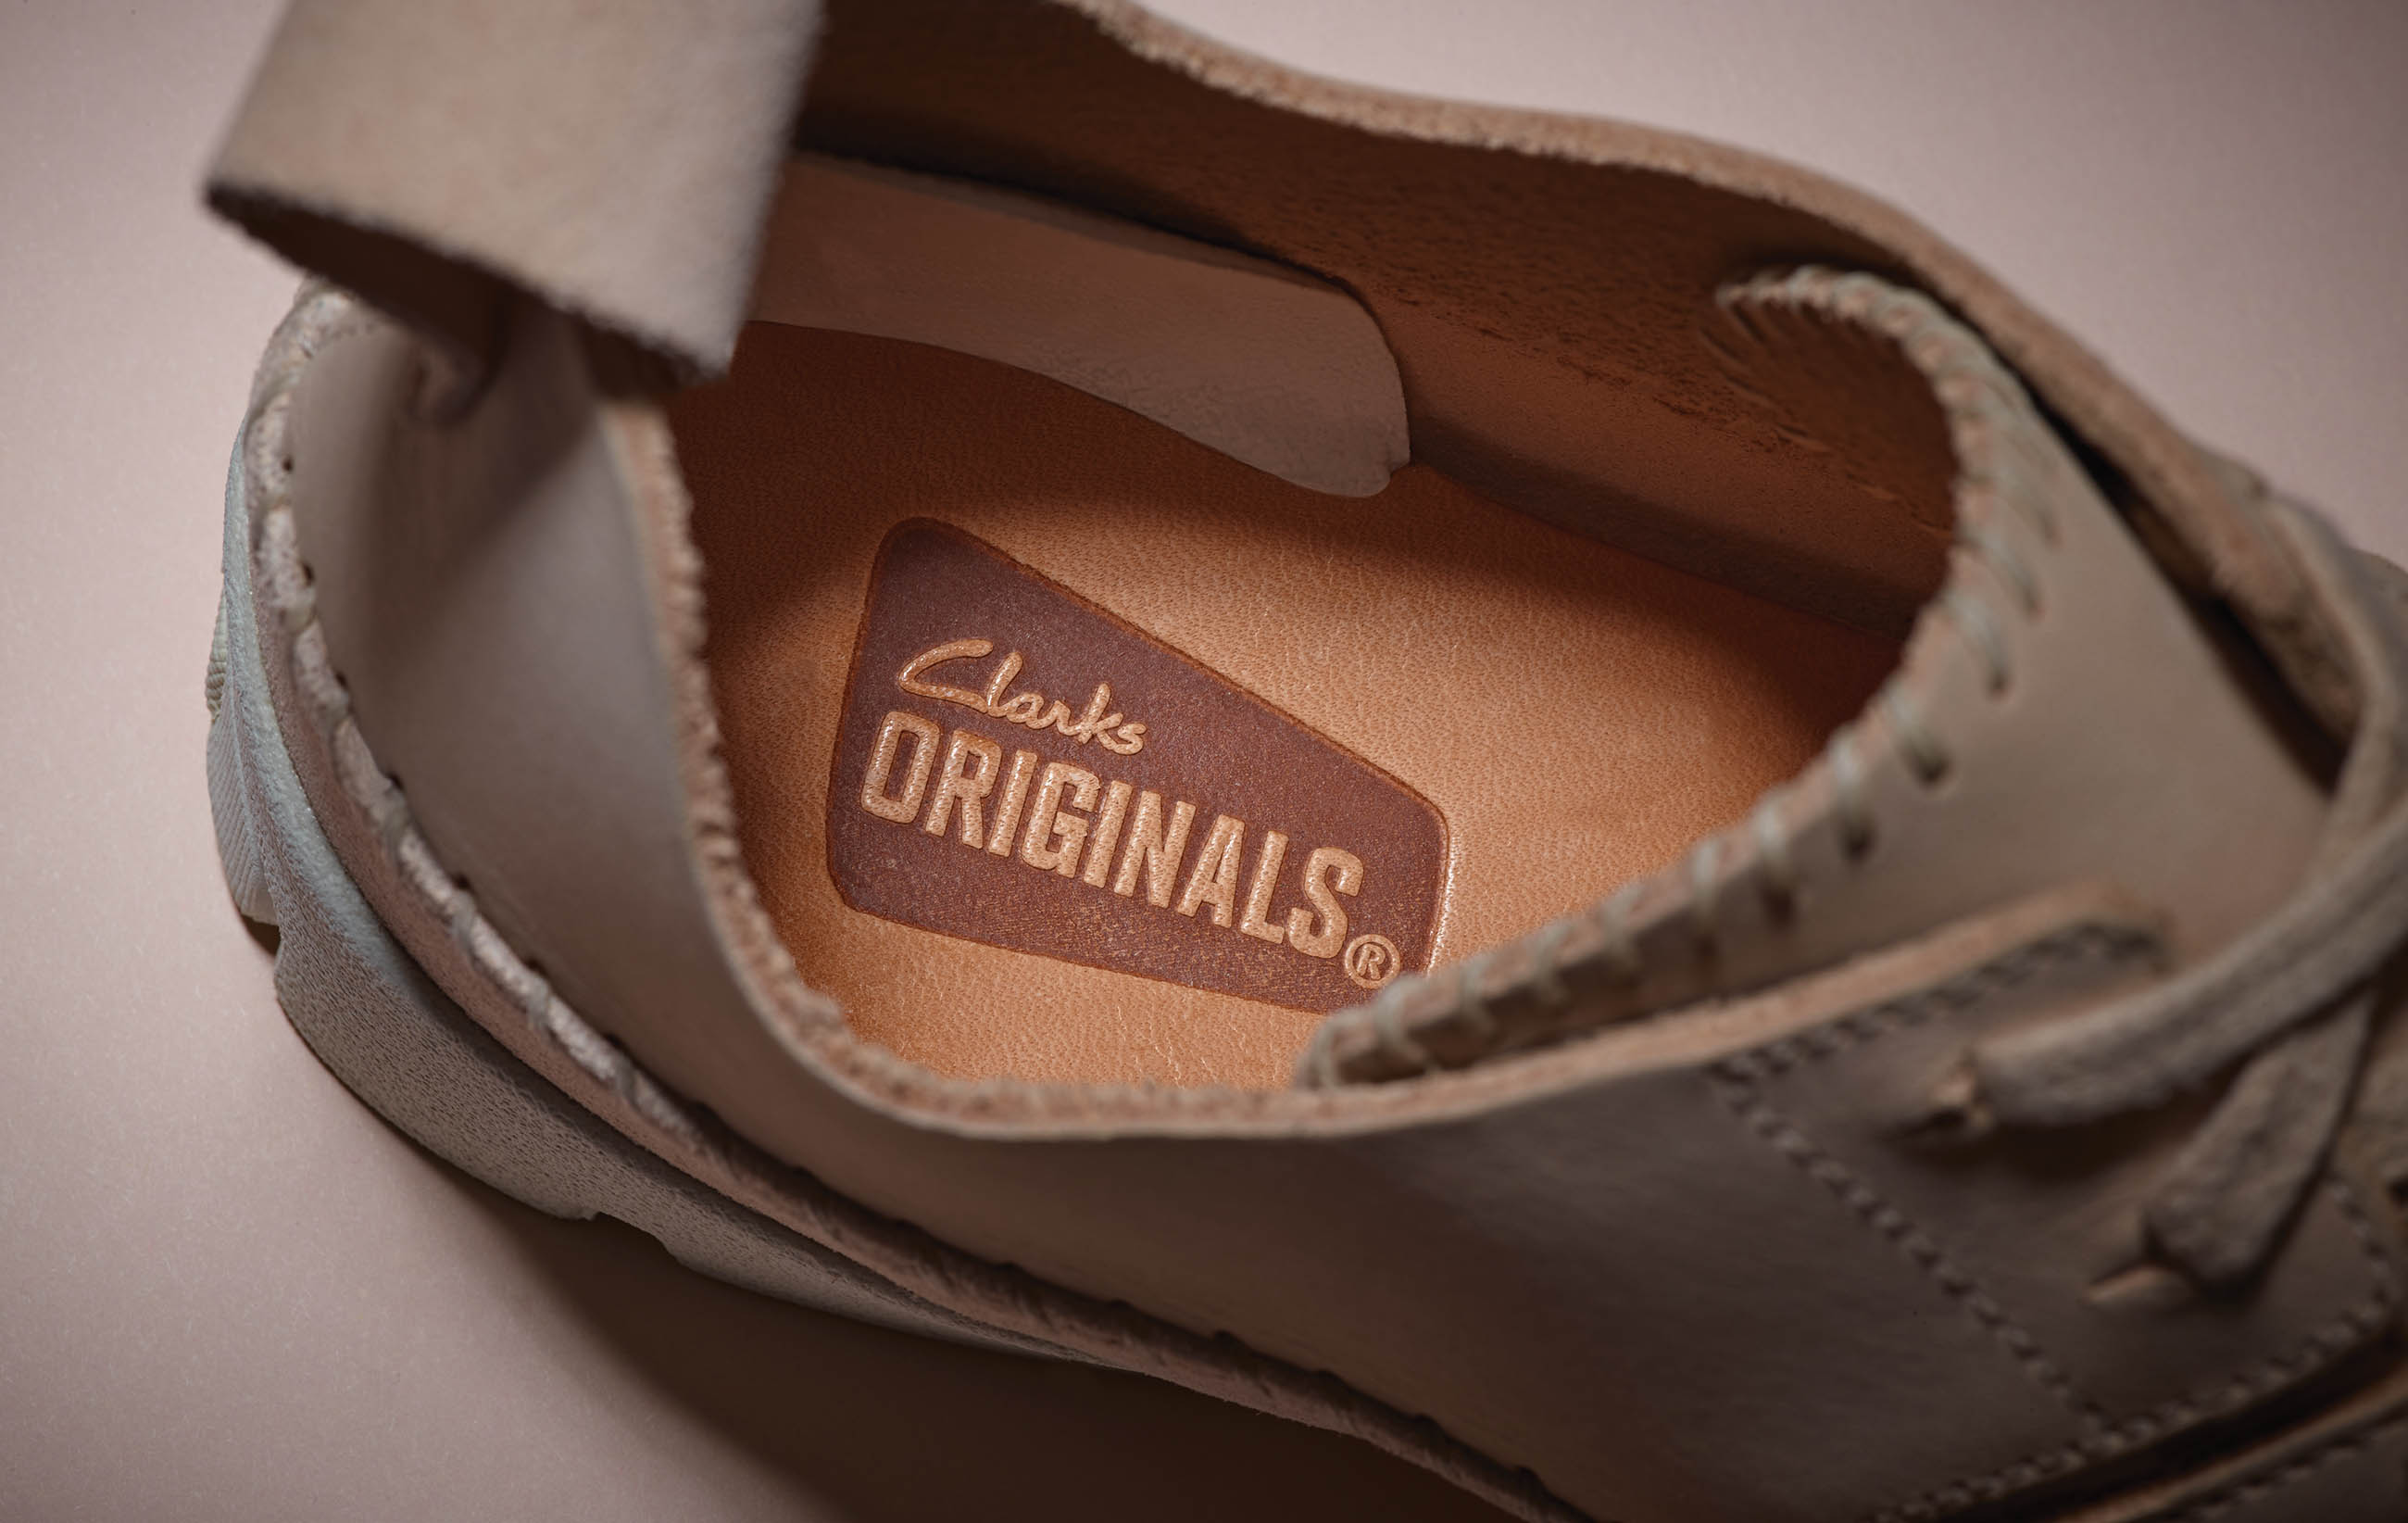 20 percent off clarks shoes